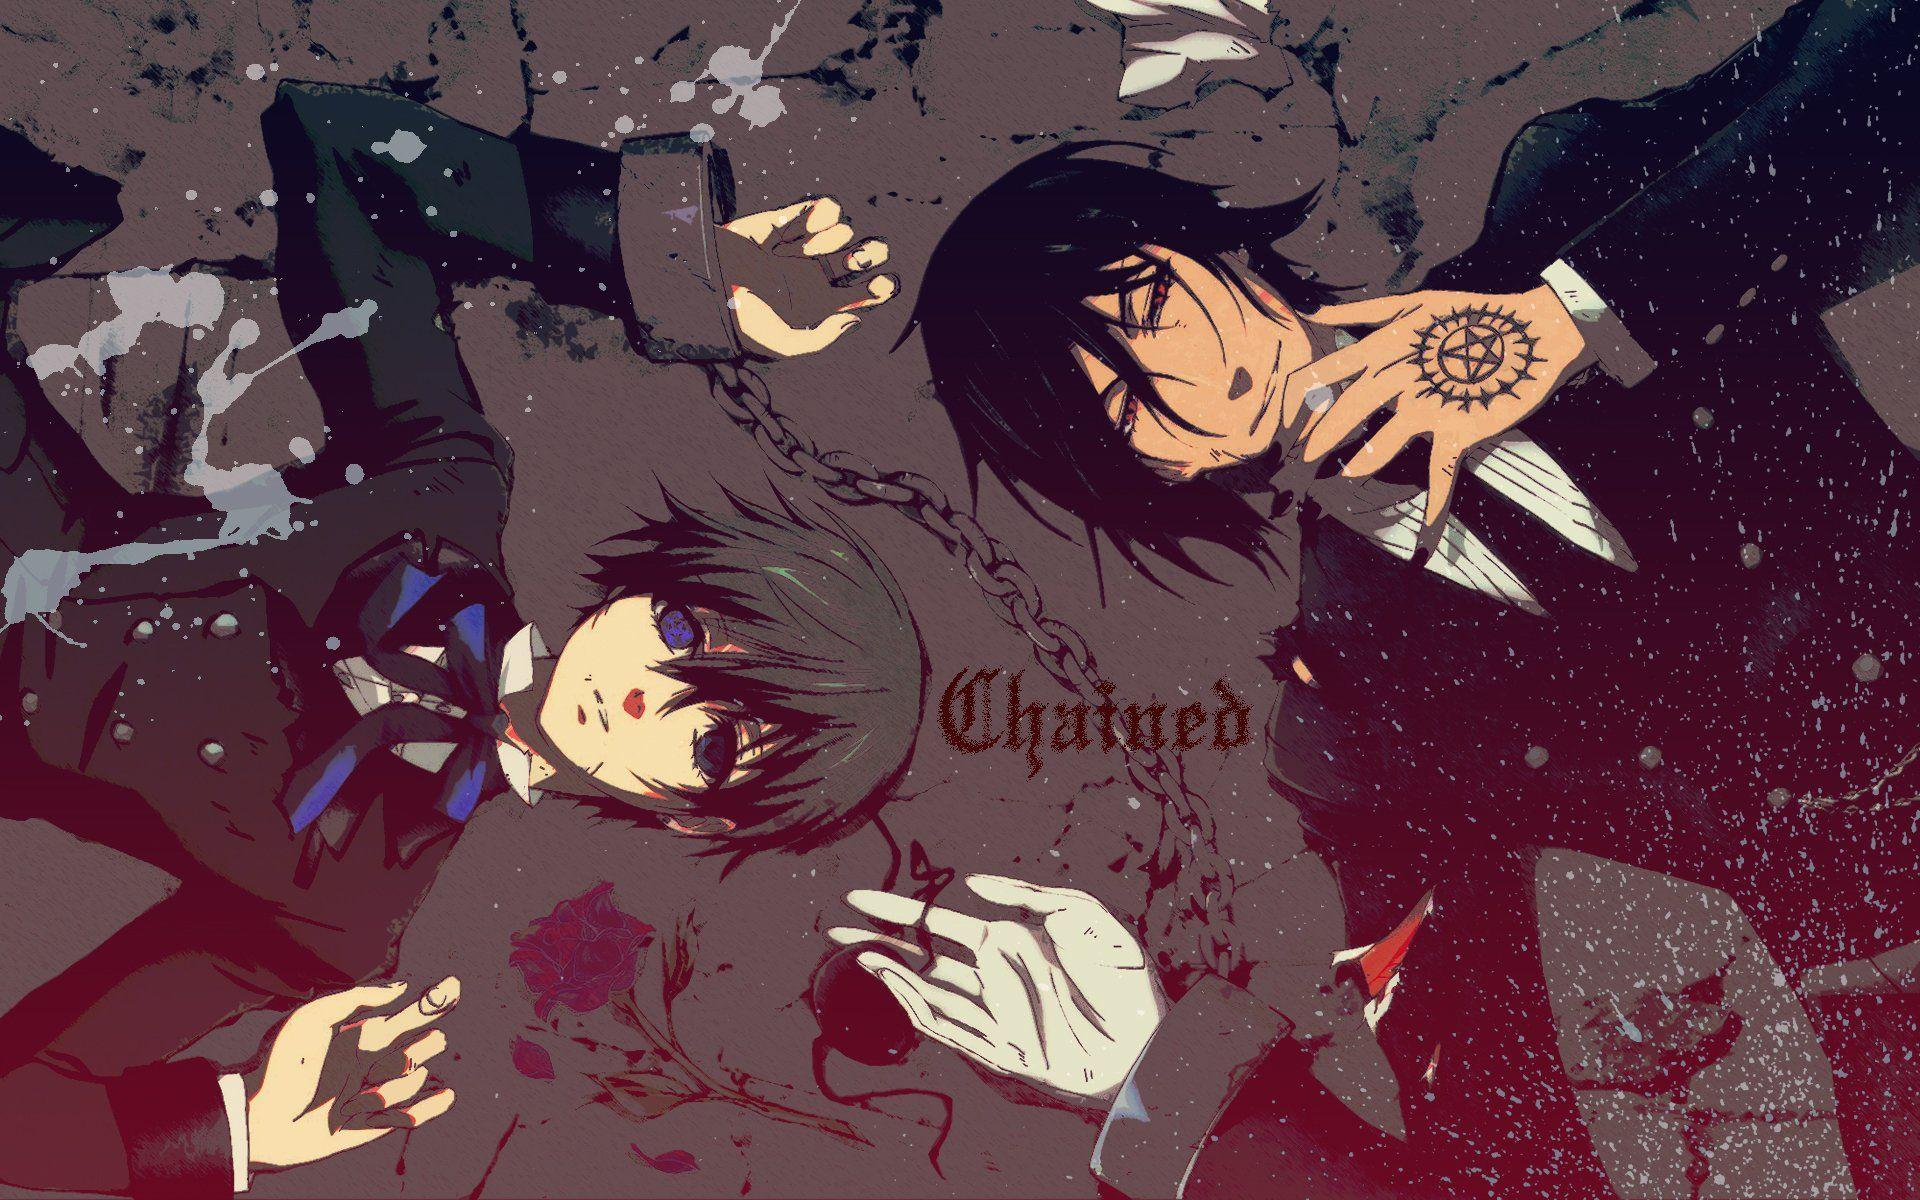 Black Butler HD Wallpapers - Top Free Black Butler HD Backgrounds ...